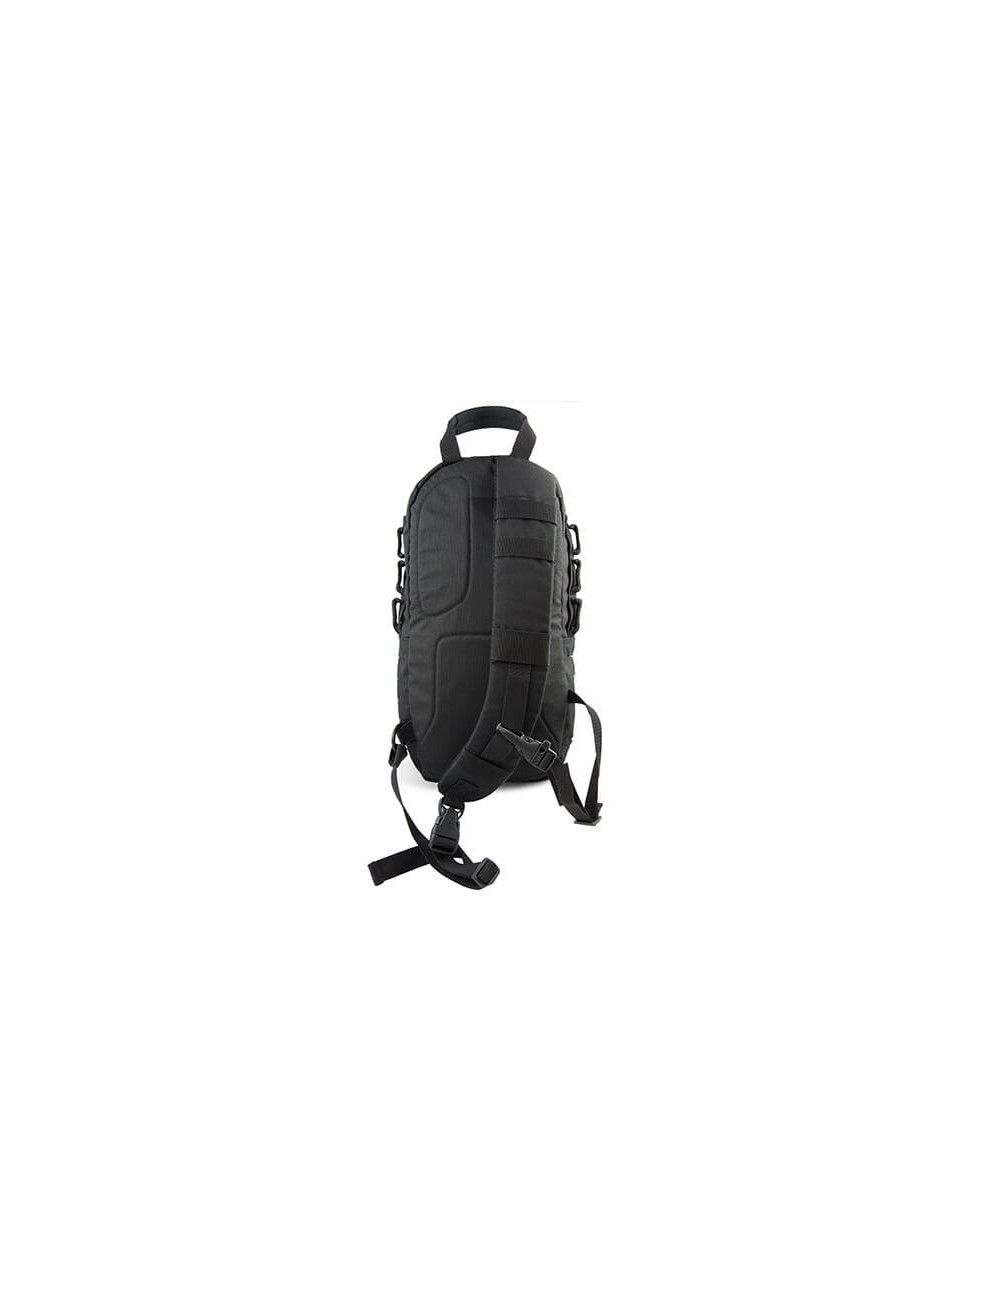 Highlander rugzak Cobra Single Strap 15 liter - Zwart